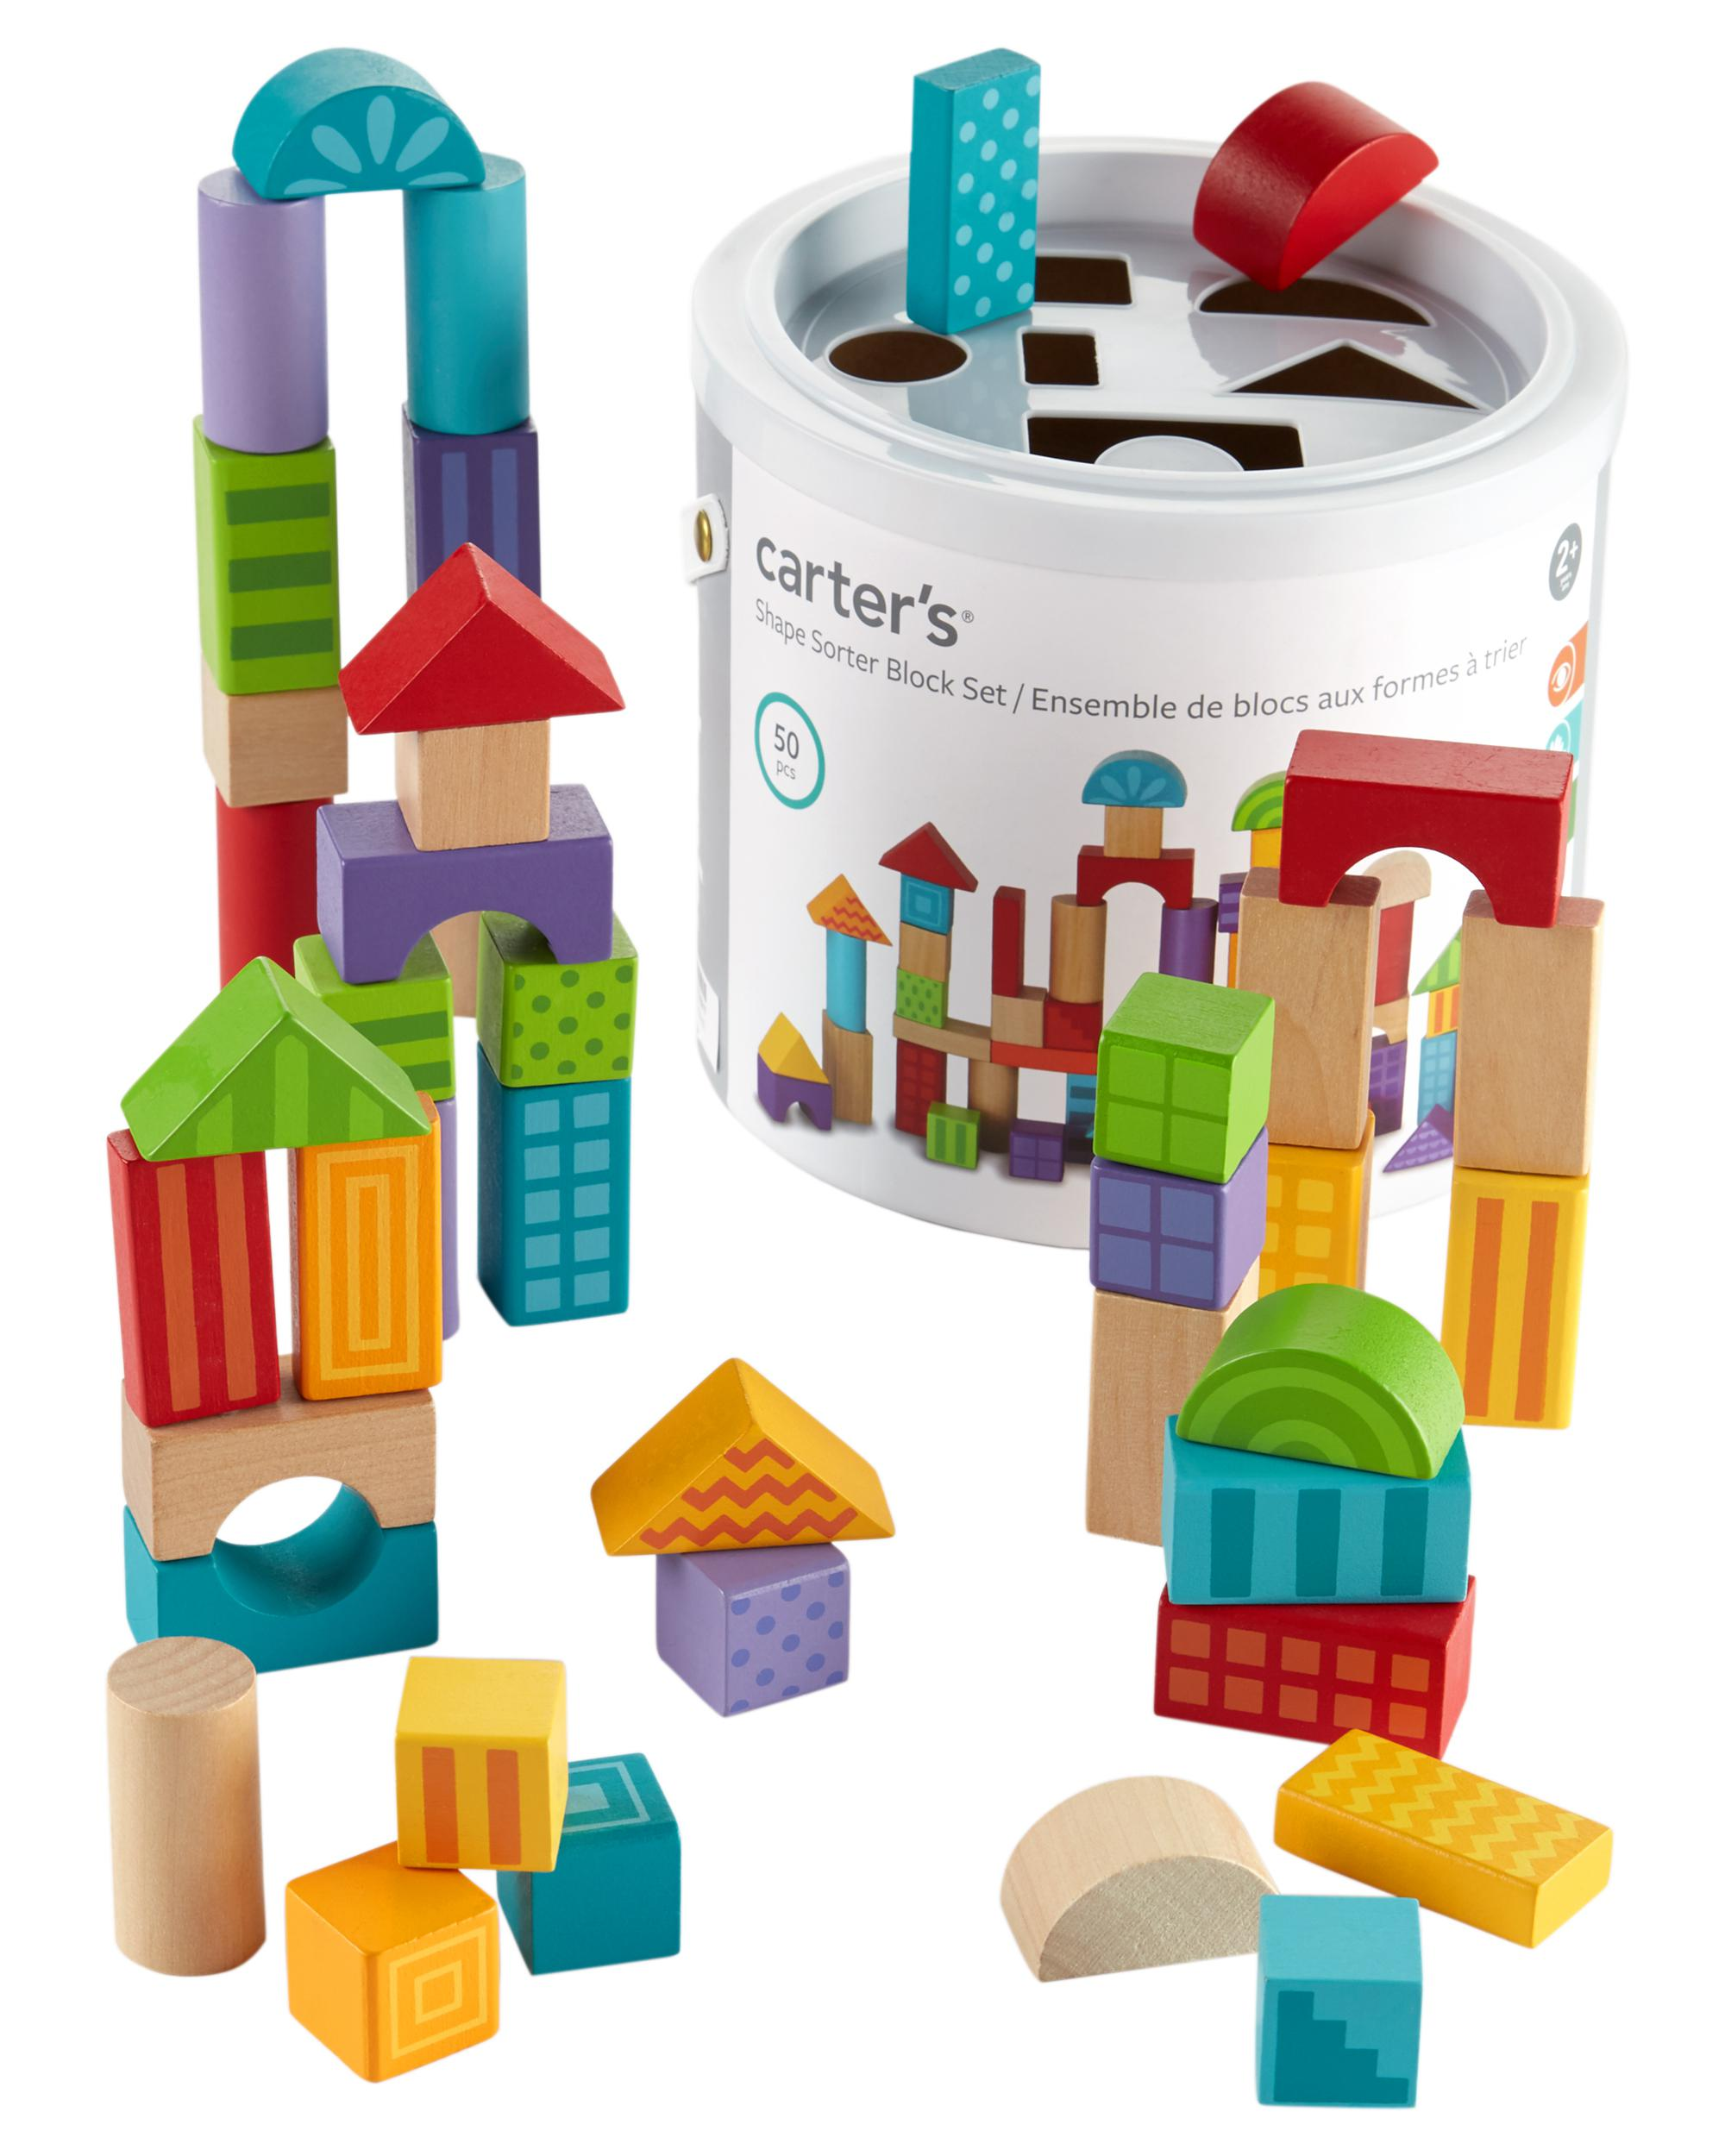 50 Piece Wooden Block Set Carterscom